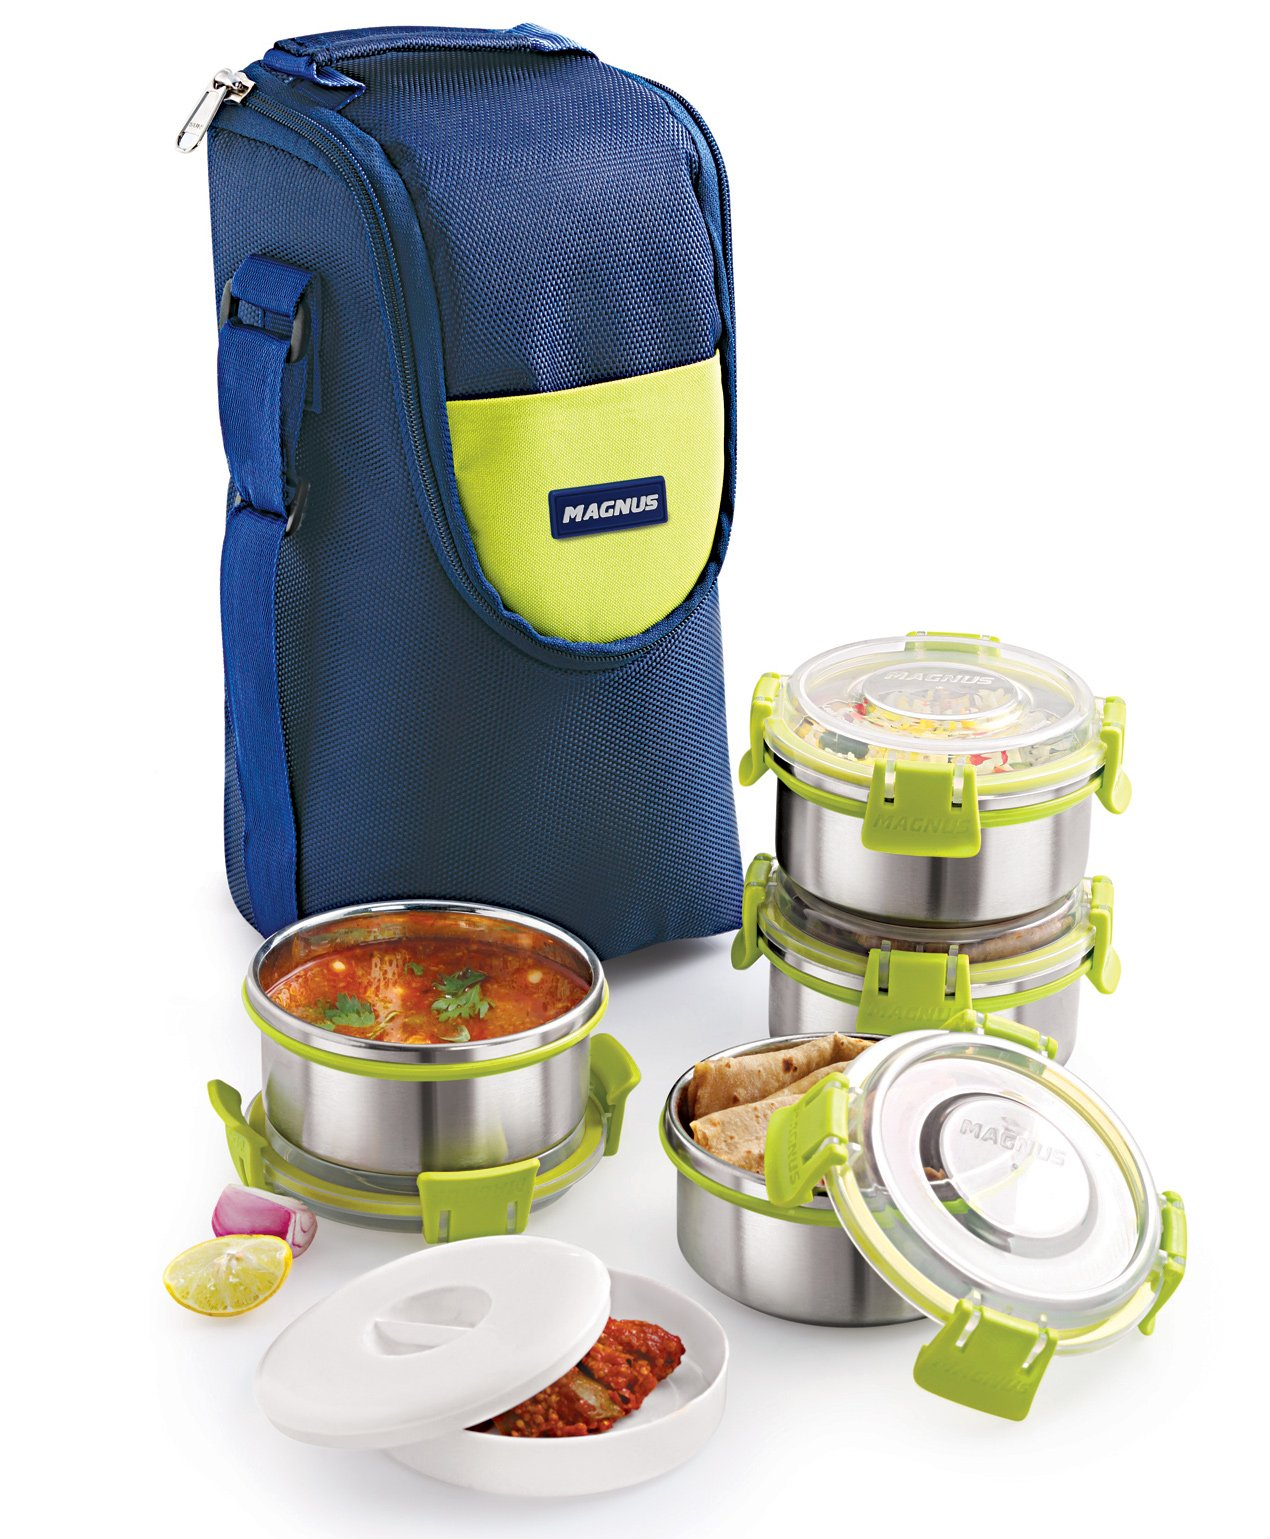 aed0a4d30f5 Magnus Stainless Steel Lunch Box With Bag Blue   Green Online in ...